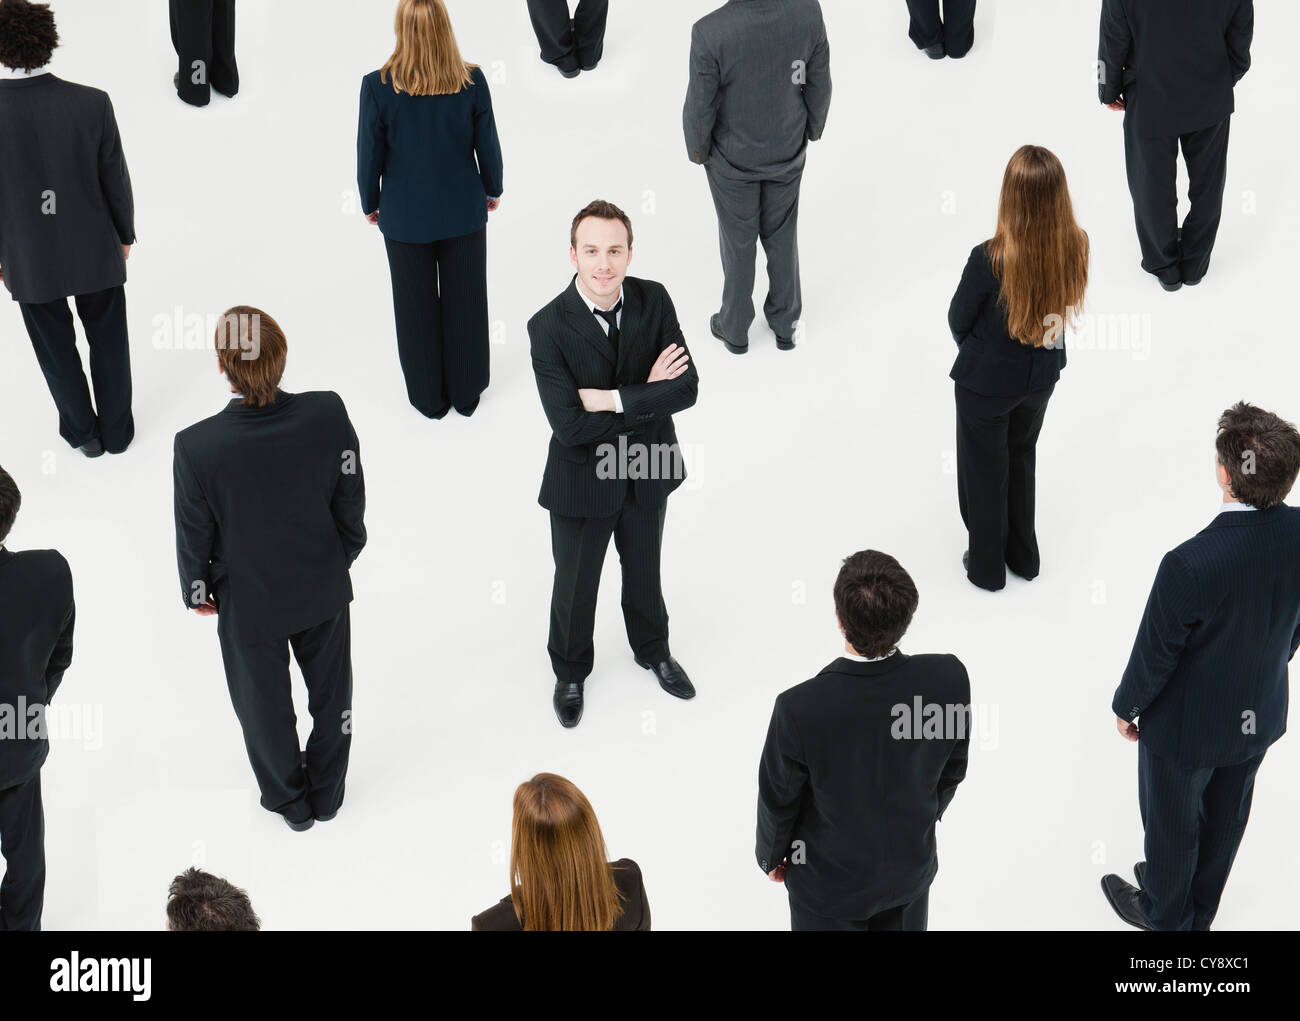 Businessman with arms crossed standing in midst of anonymously dressed business professionals - Stock Image